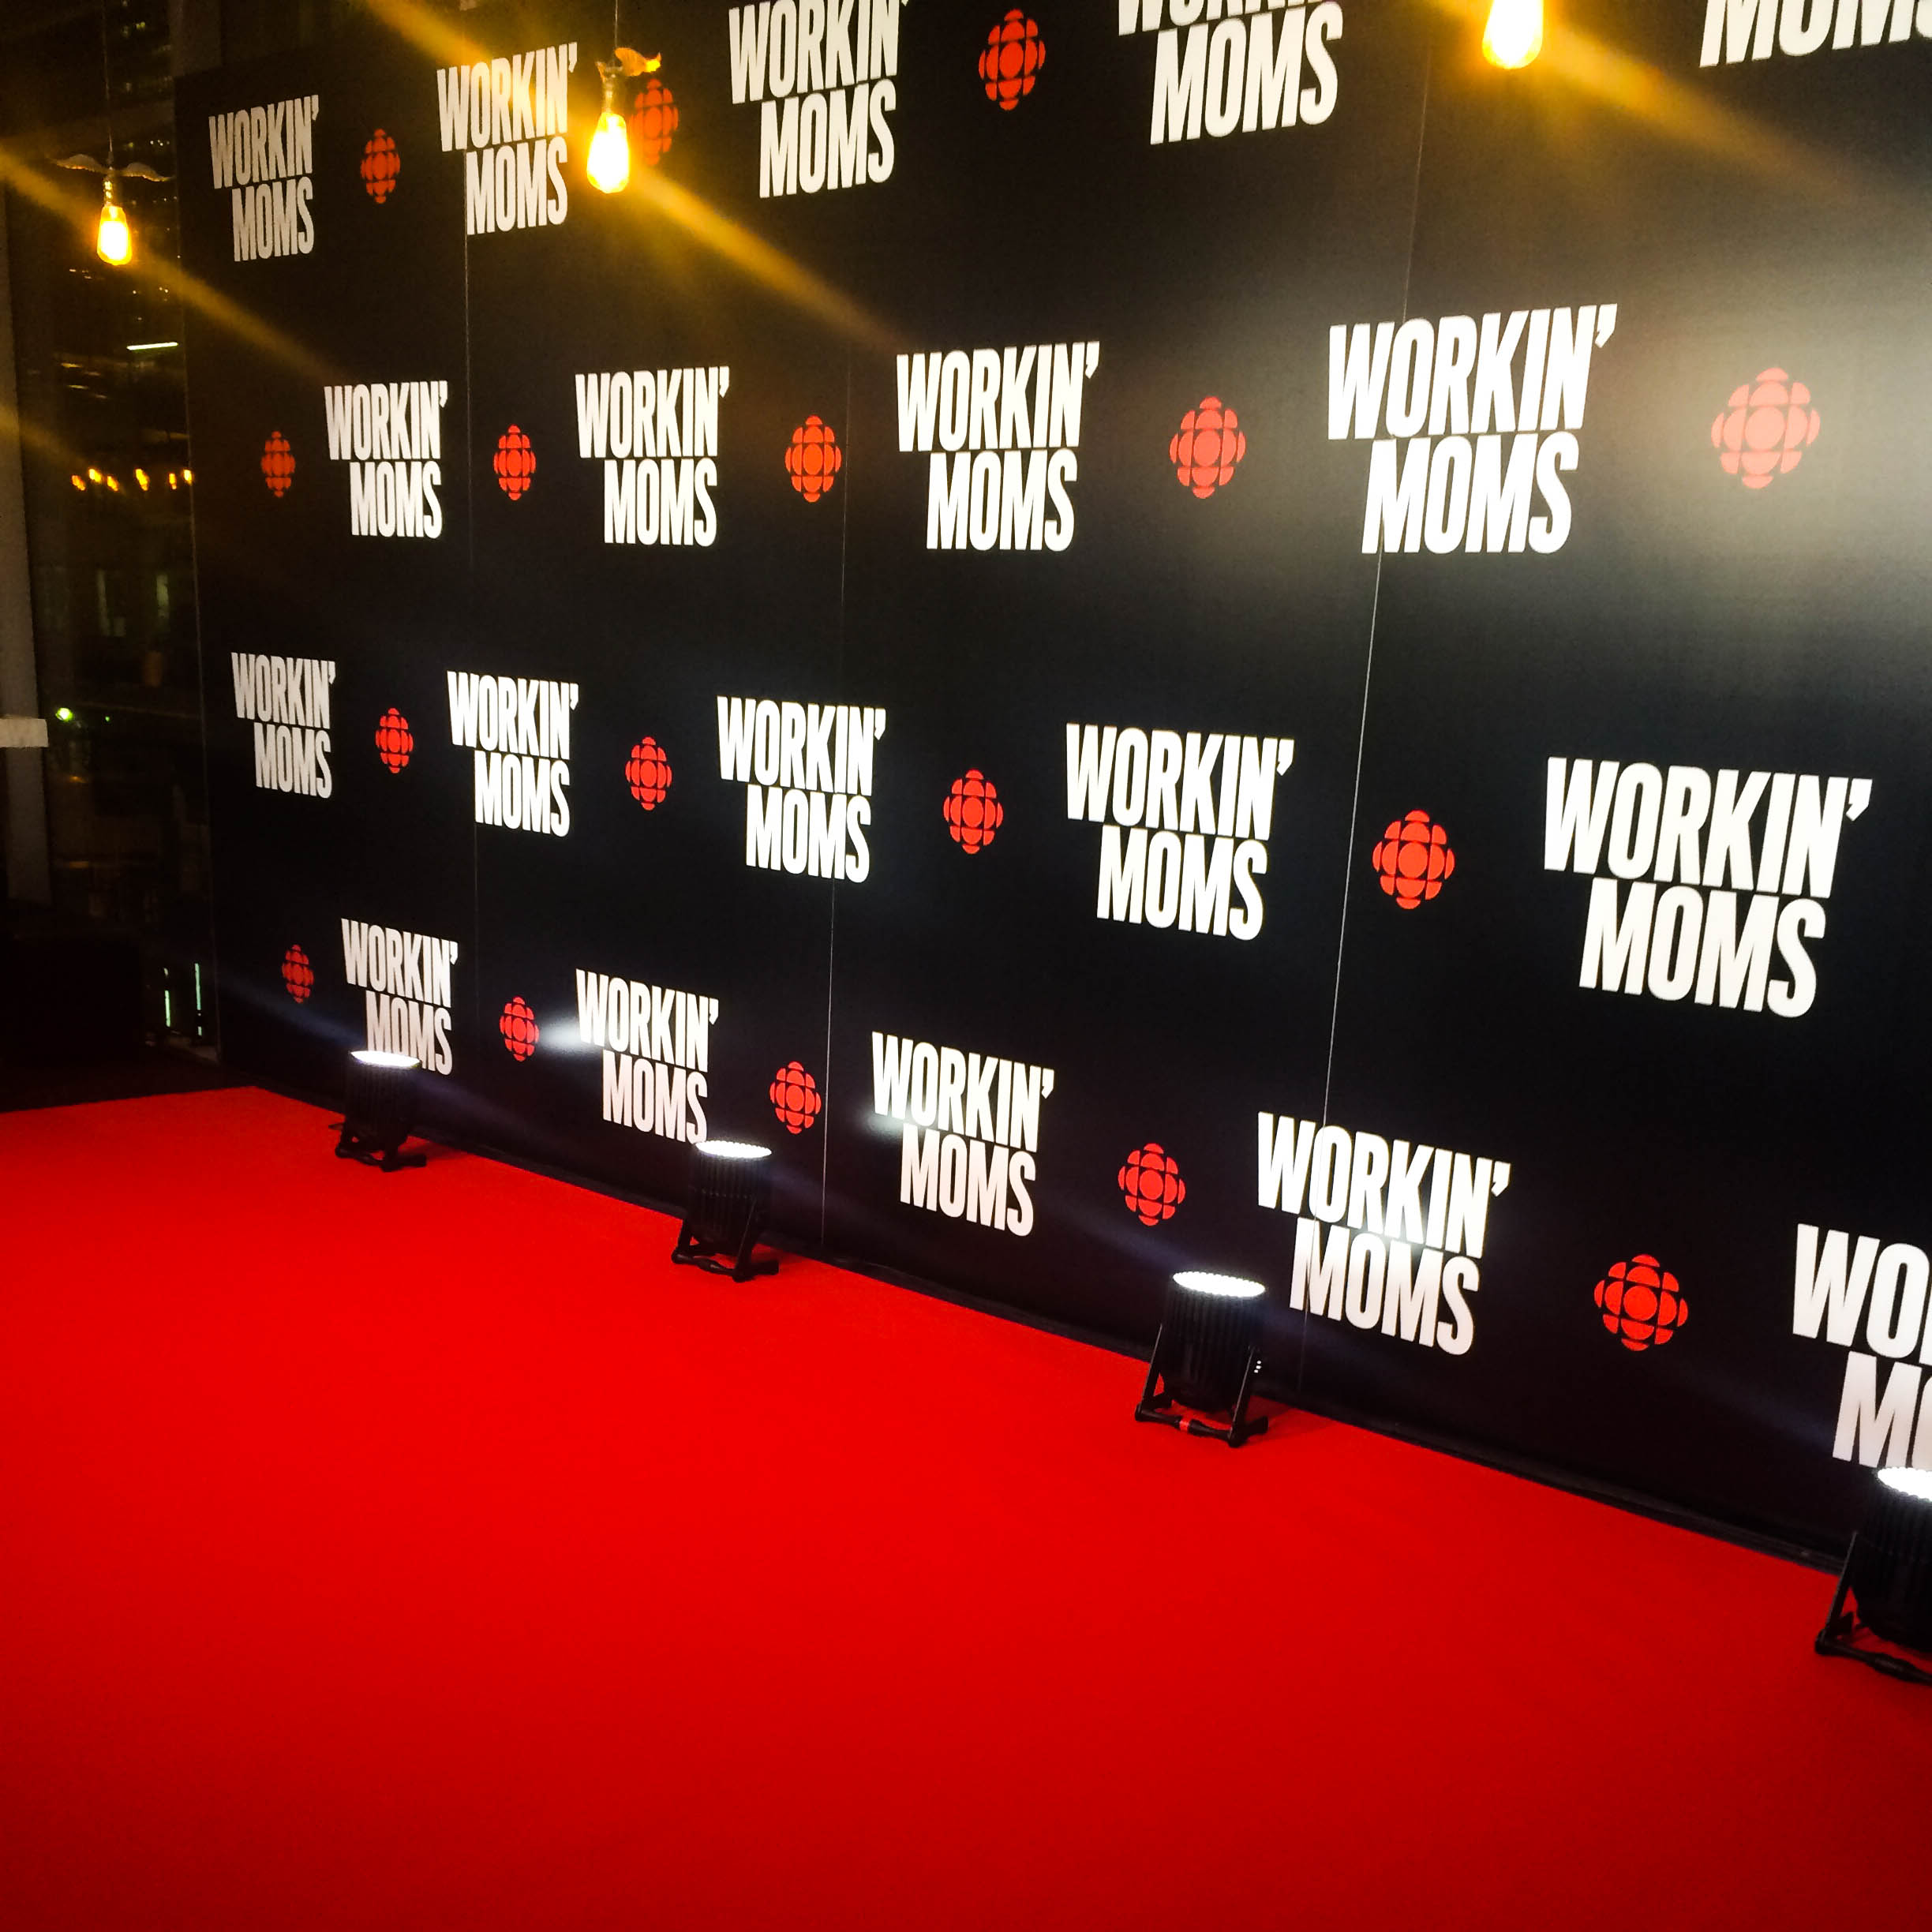 CBC's Workin Moms Screening on Reznick Red Event Carpet at TIFF Lightbox